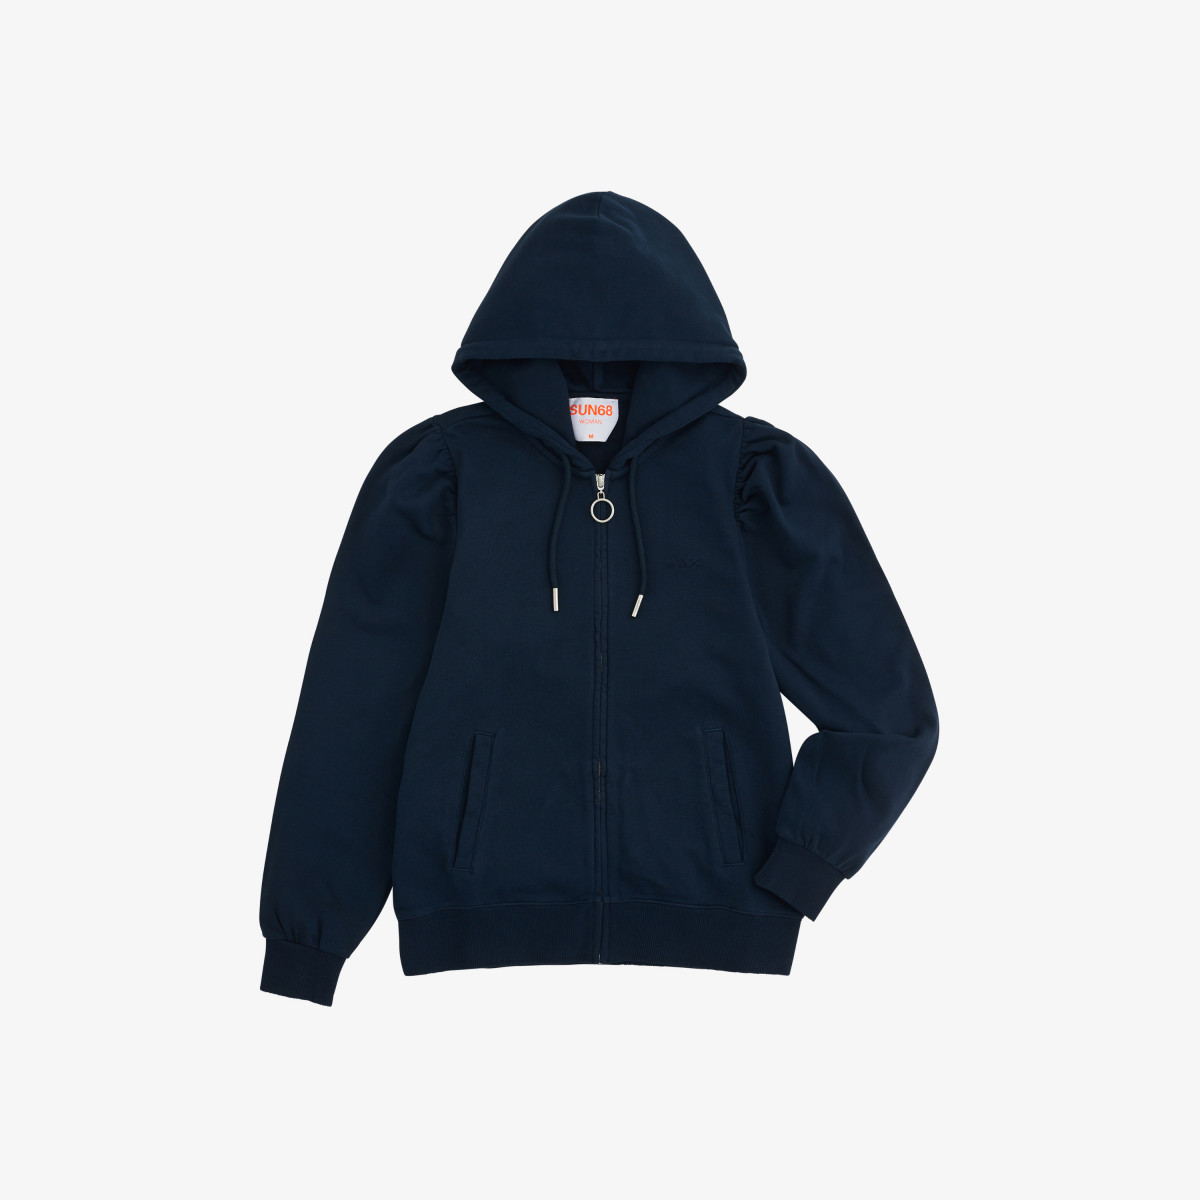 FULL ZIP HOOD COTTON FL. NAVY BLUE